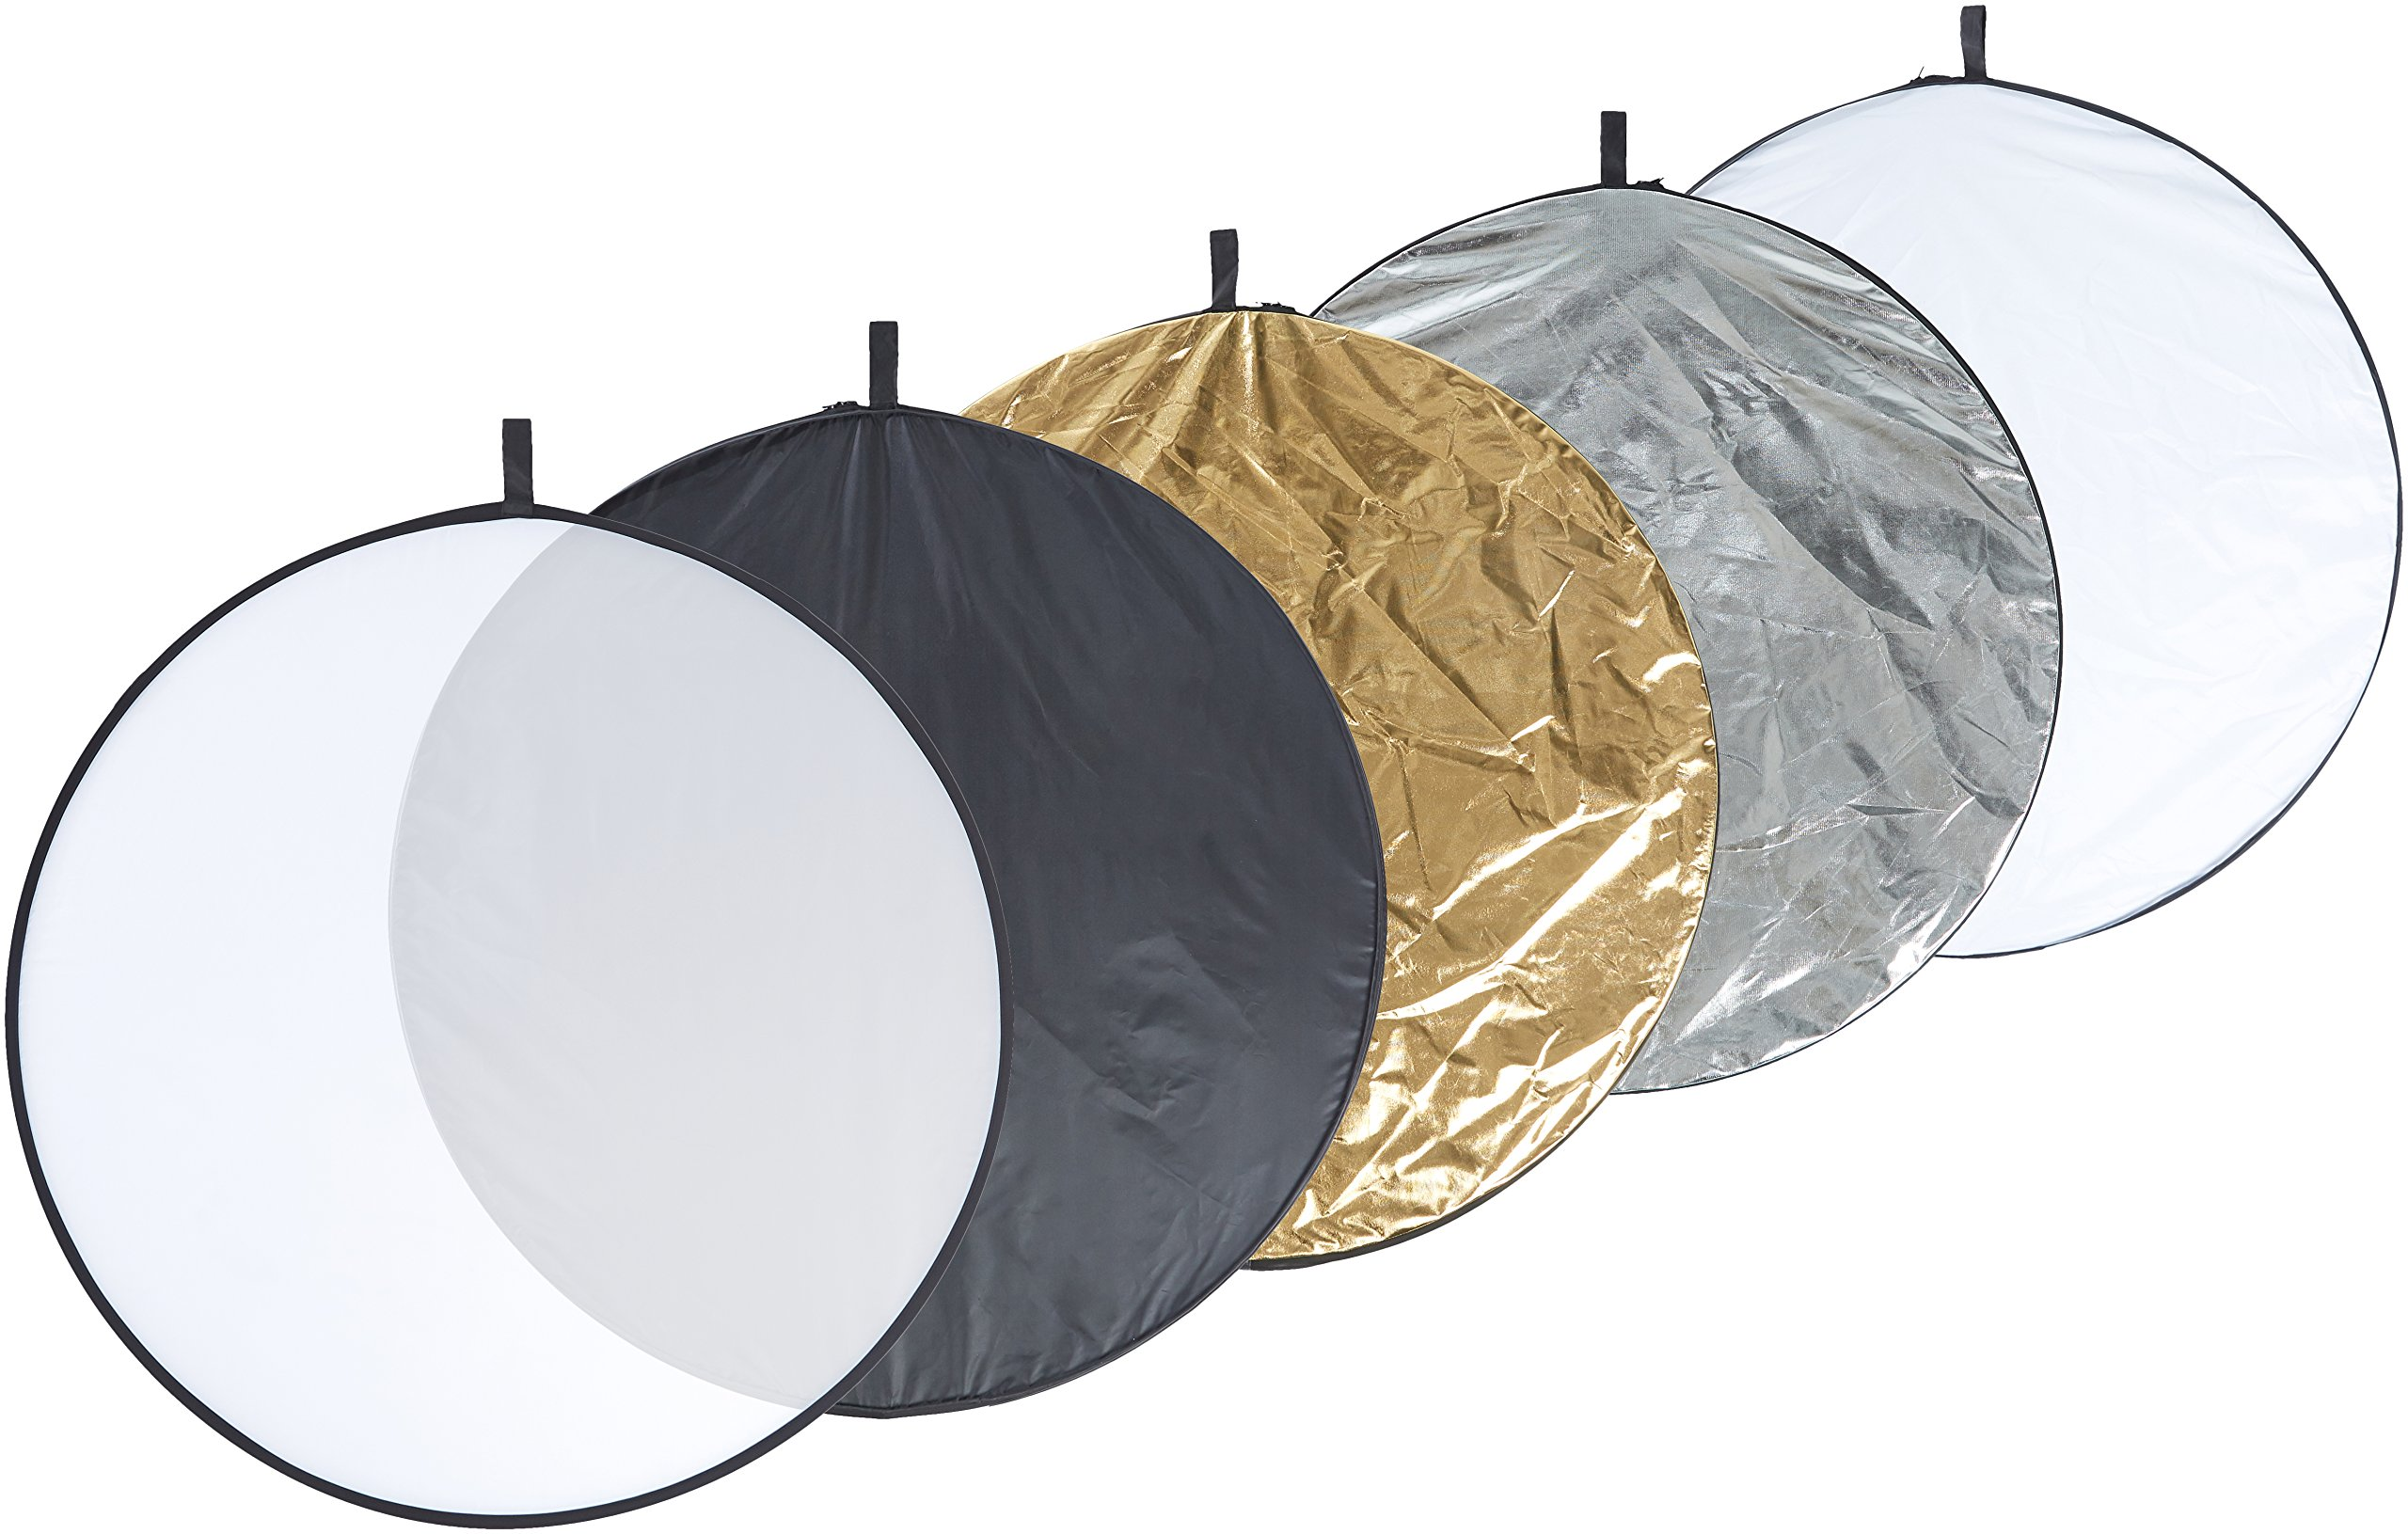 AmazonBasics 5 in 1 Collapsible Multi-Disc Photography Light Reflector with Bag - 43 Inch by AmazonBasics